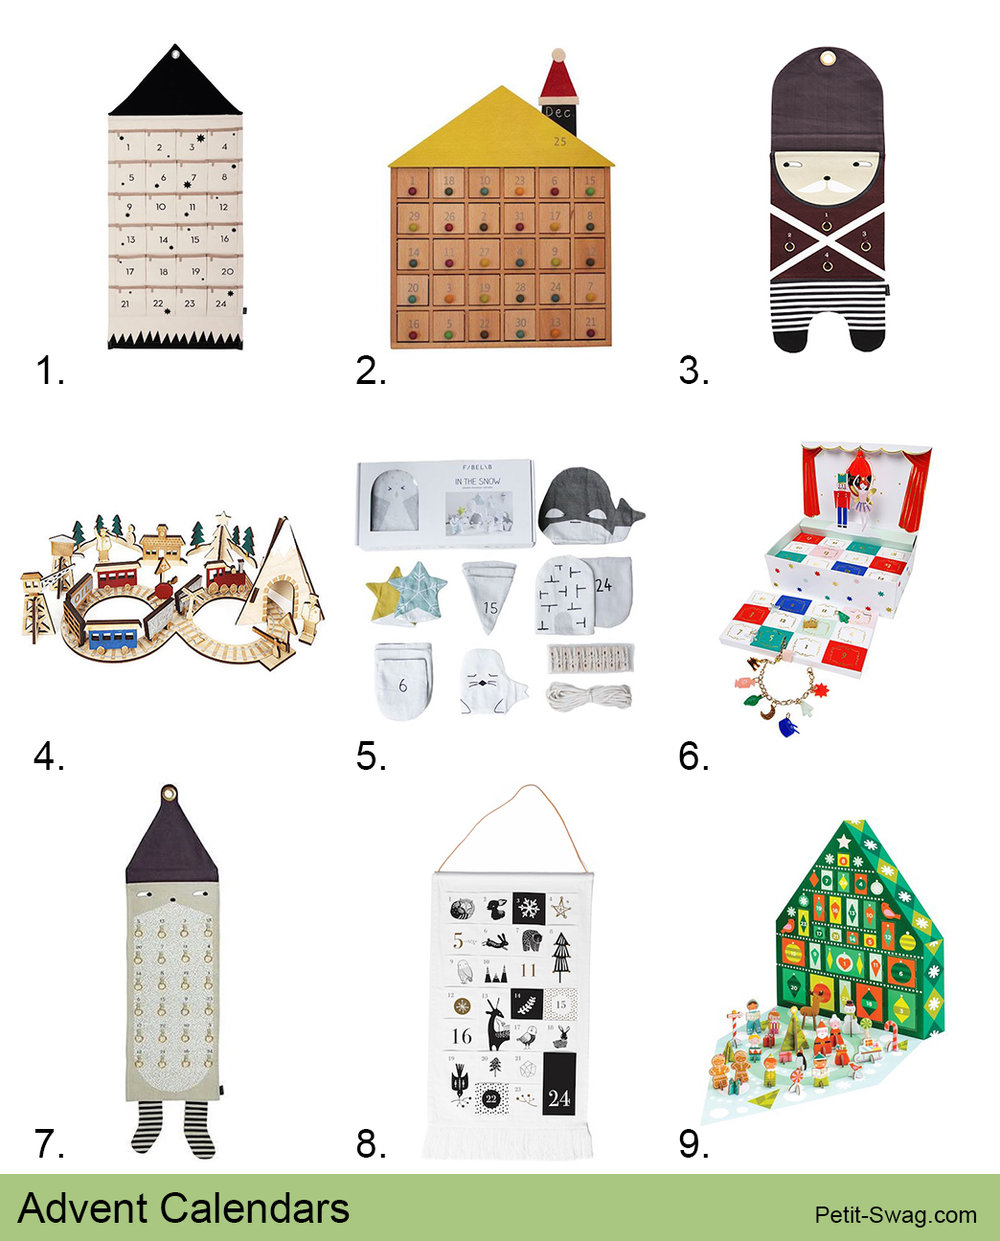 Advent Calendars | Petit-Swag.com